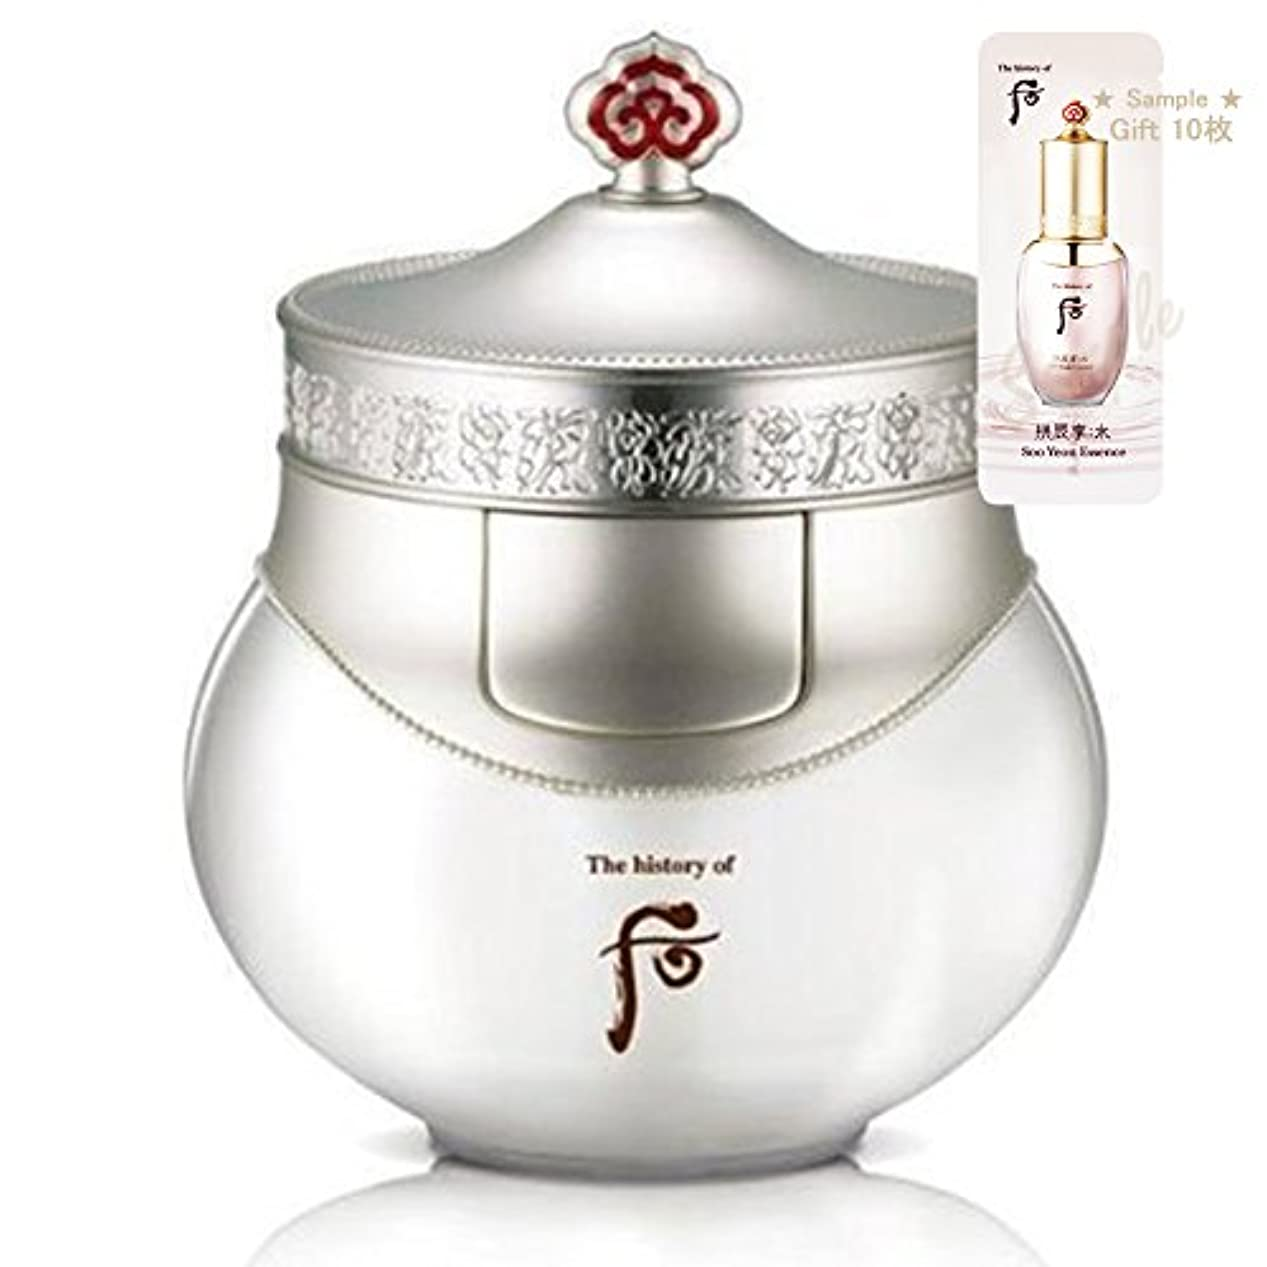 適切に九月鎮静剤The history of whoo Gongjinhyang Seol Whitening & Mositure Cream - 60ml[並行輸入品]